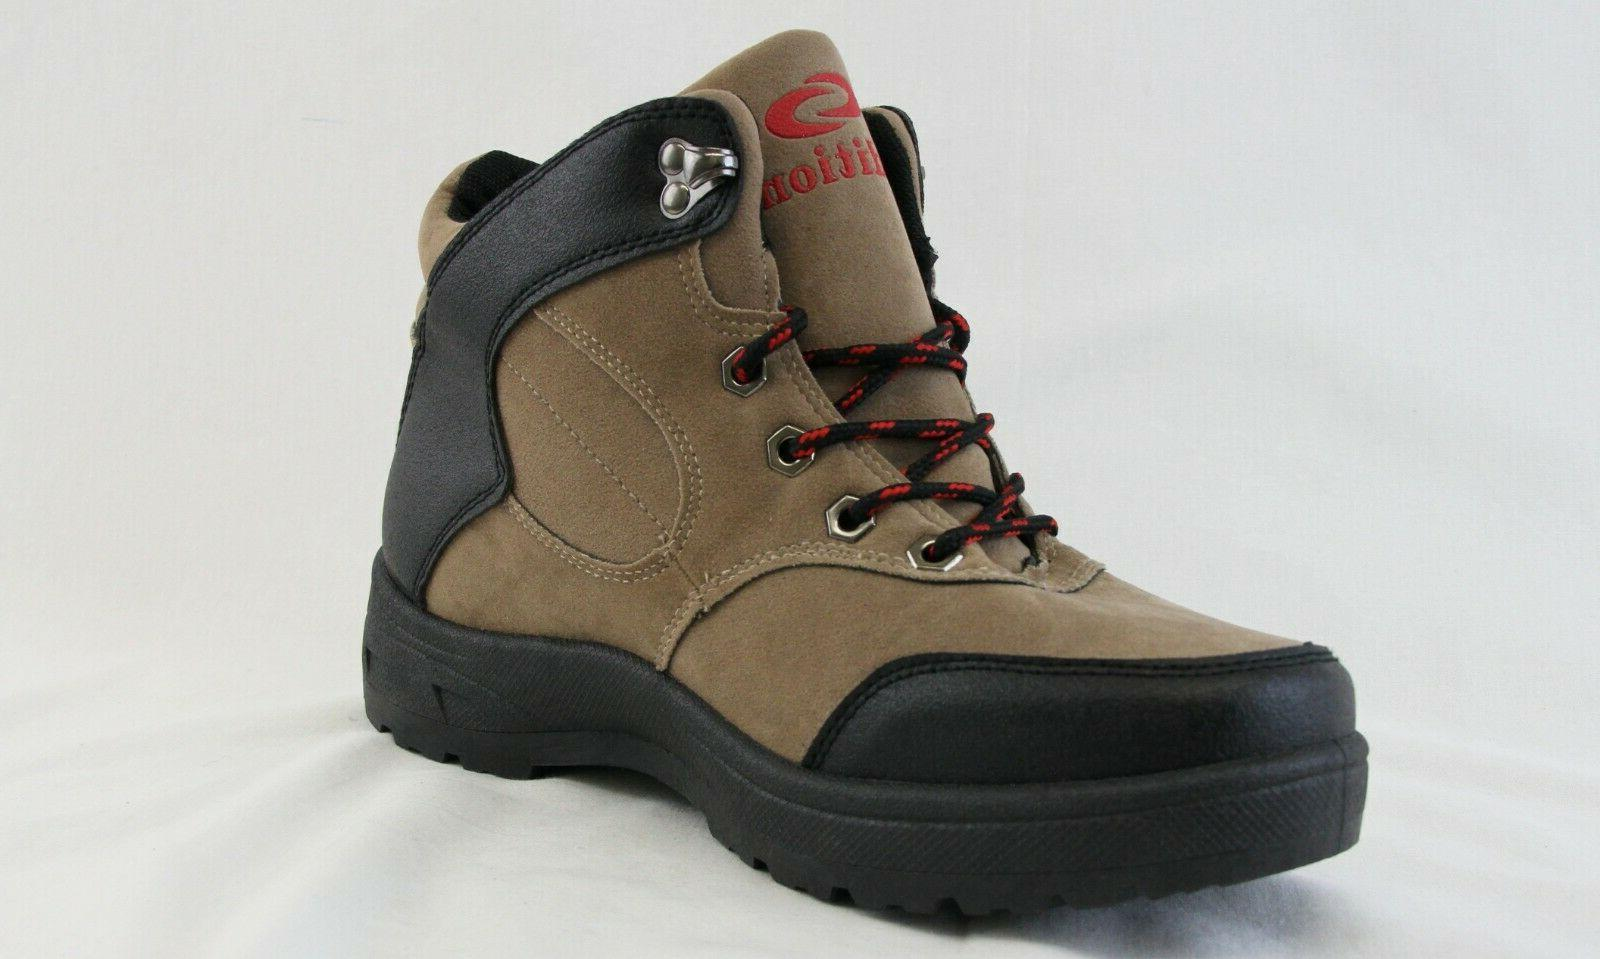 Men Up Hiking Boots Black Lightweight Walking Shoes